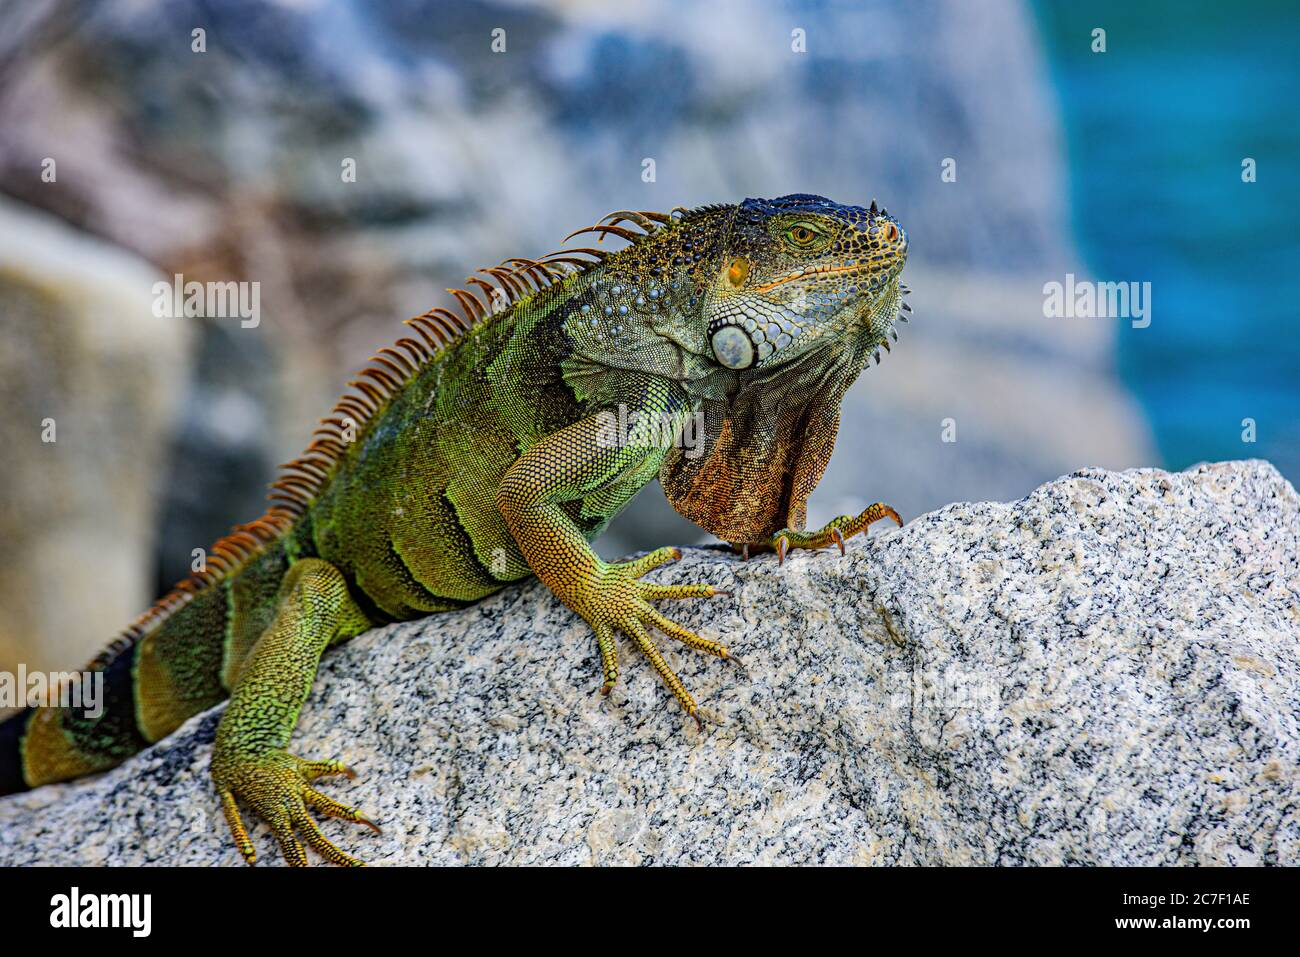 Green Iguana, also known as Common or American iguana, on nature background. Stock Photo